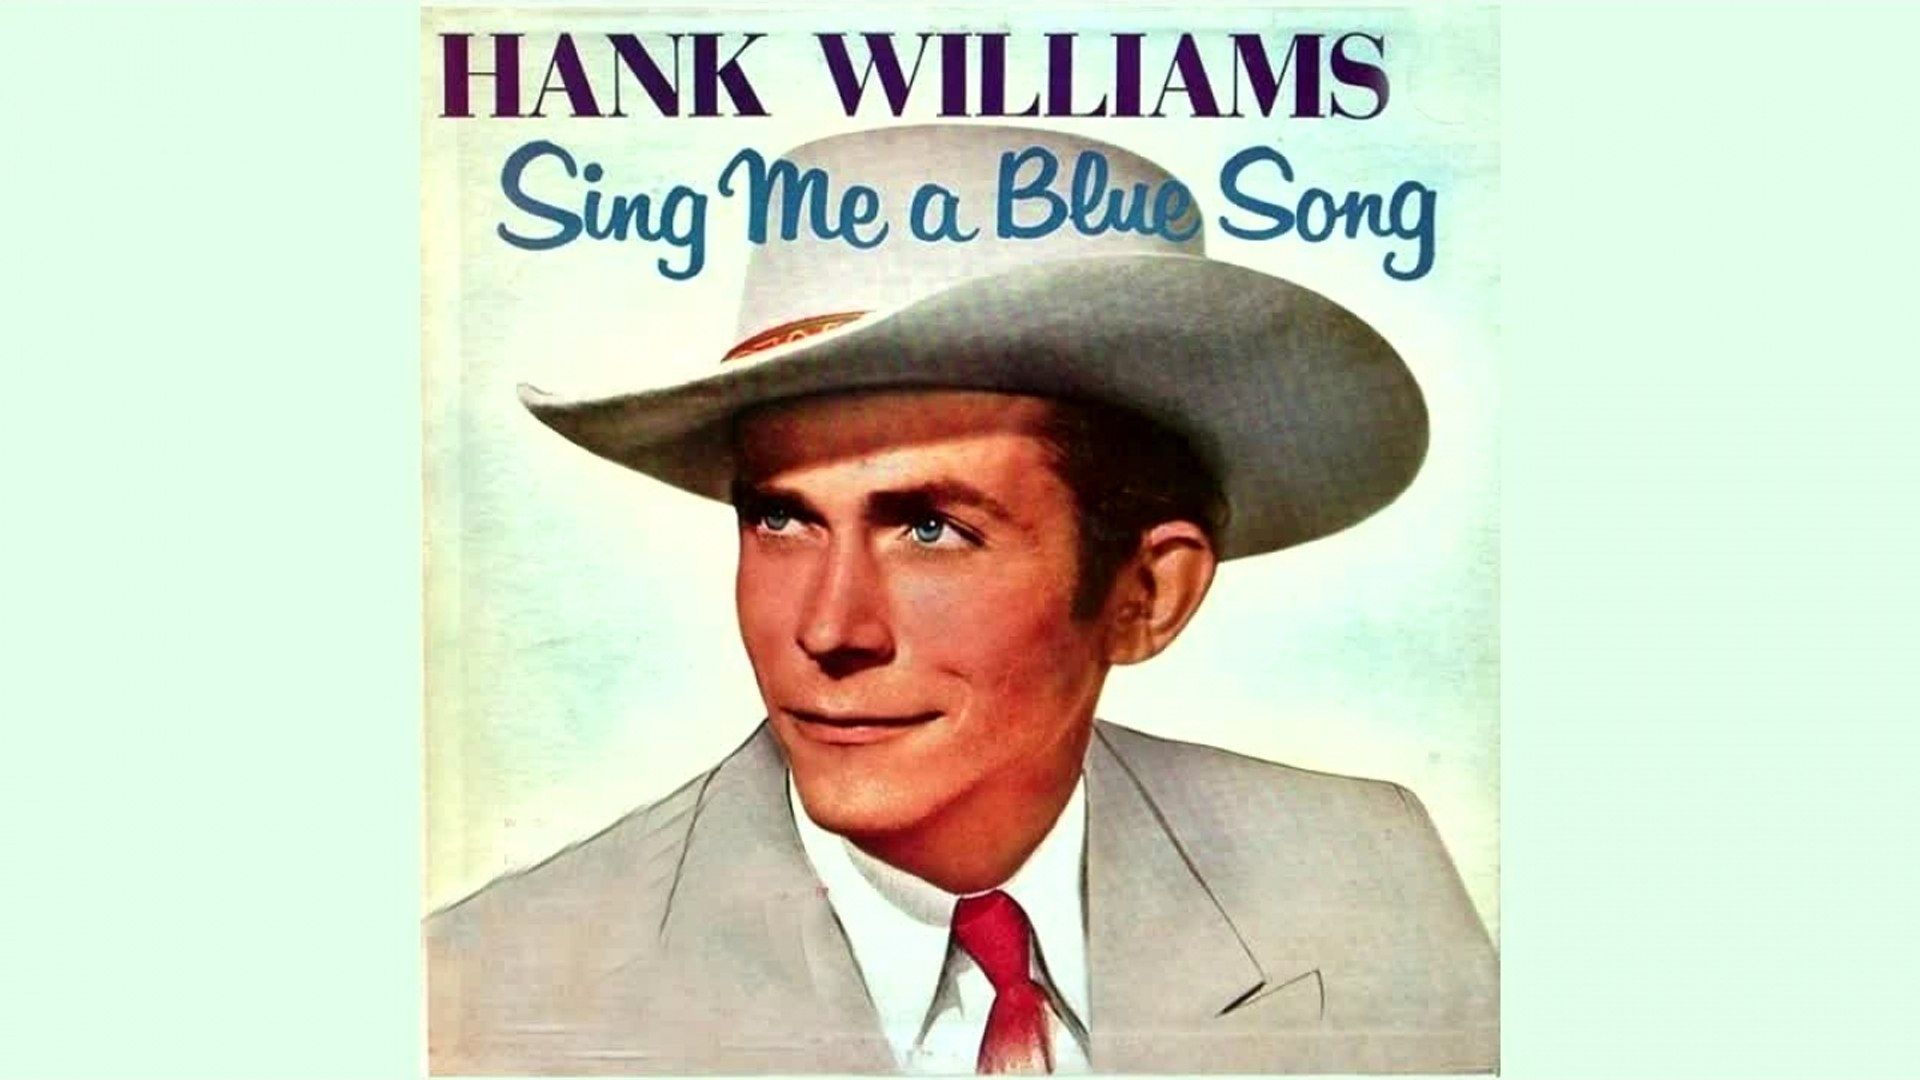 Hank Williams - Blue Love (In My Heart)